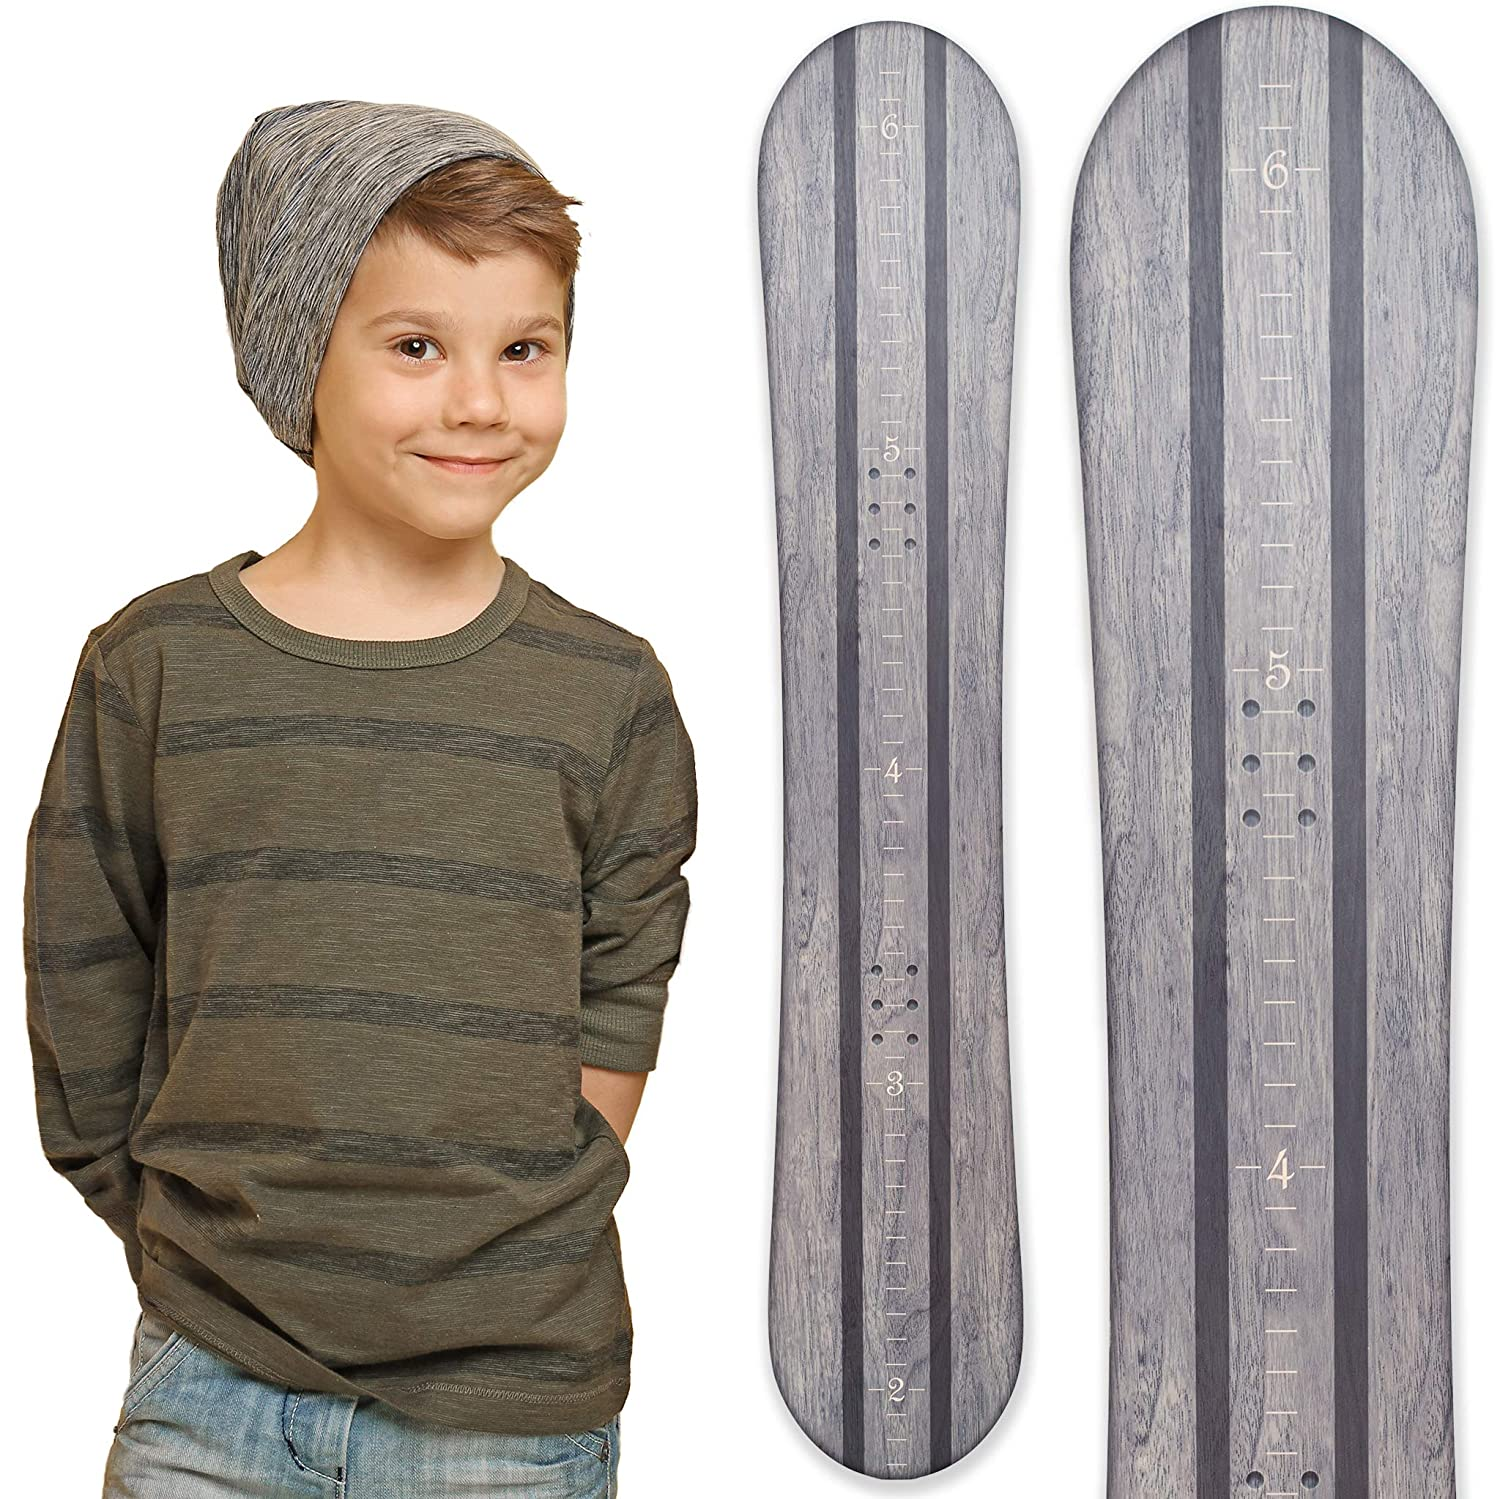 Growth Chart Art | Wooden Snowboard Height Chart for Kids, Boys, Girls for Measuring Height of Kids, Nursery Wall Decor | Baby Snowboard | Gray SNOWGRAY